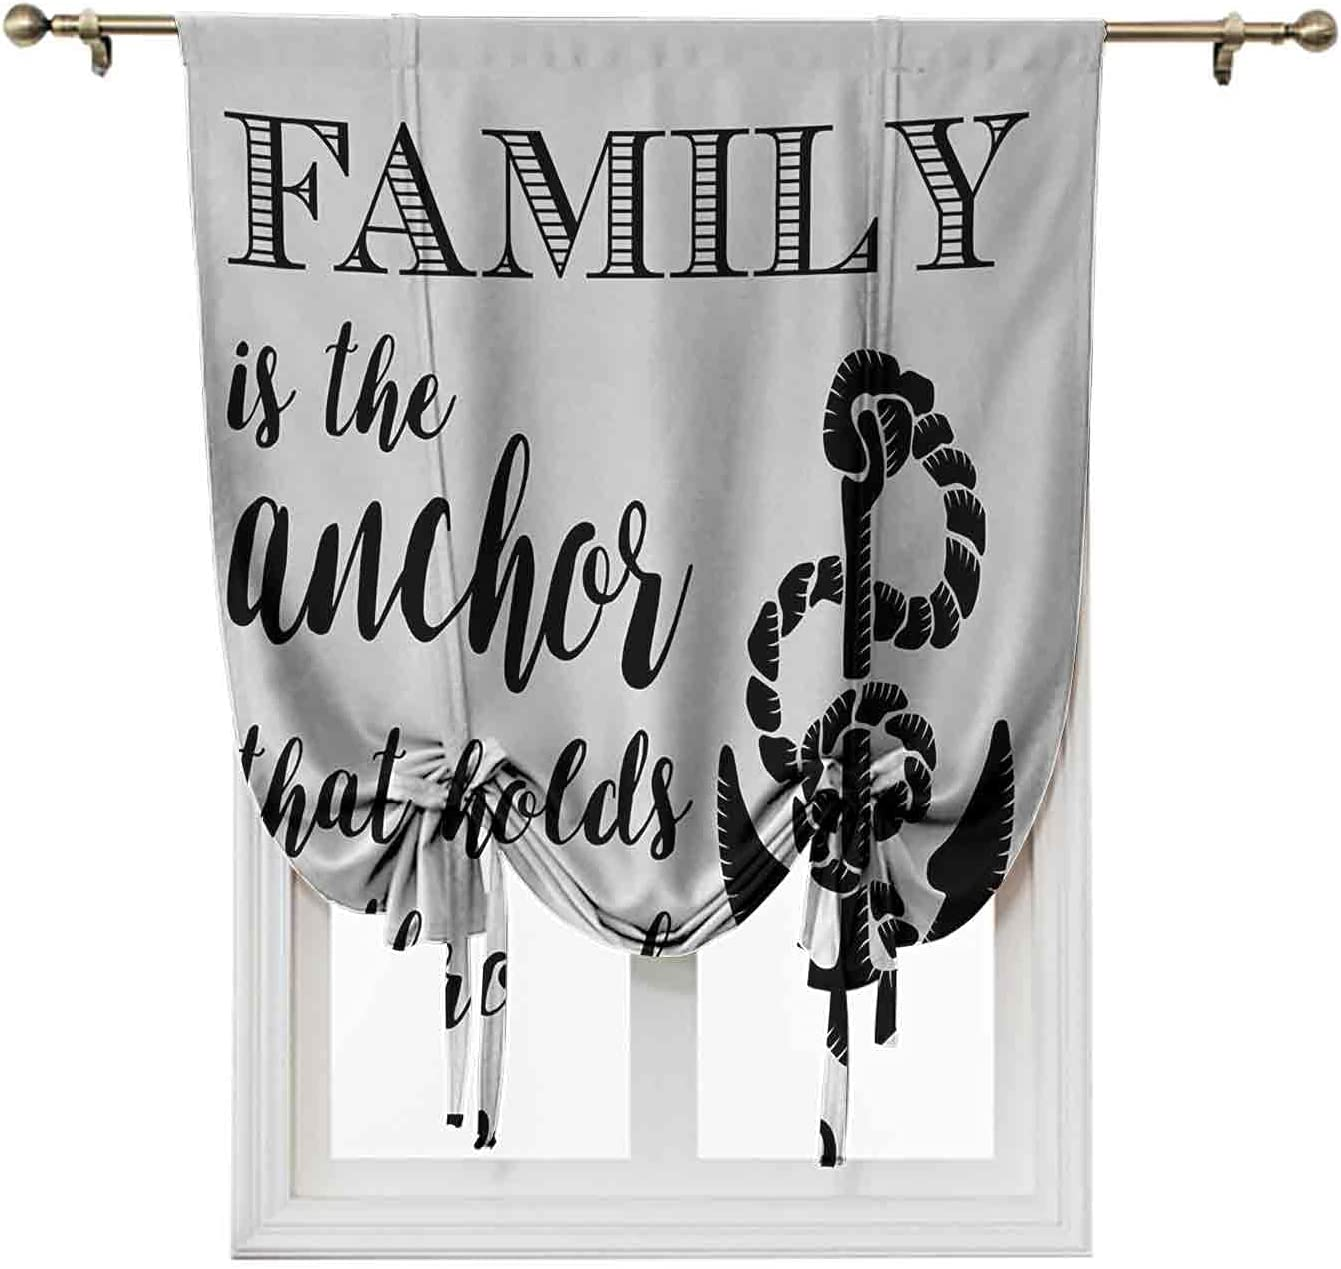 Family Roman Window Shades, Thermal Insulated Blinds and Shades,